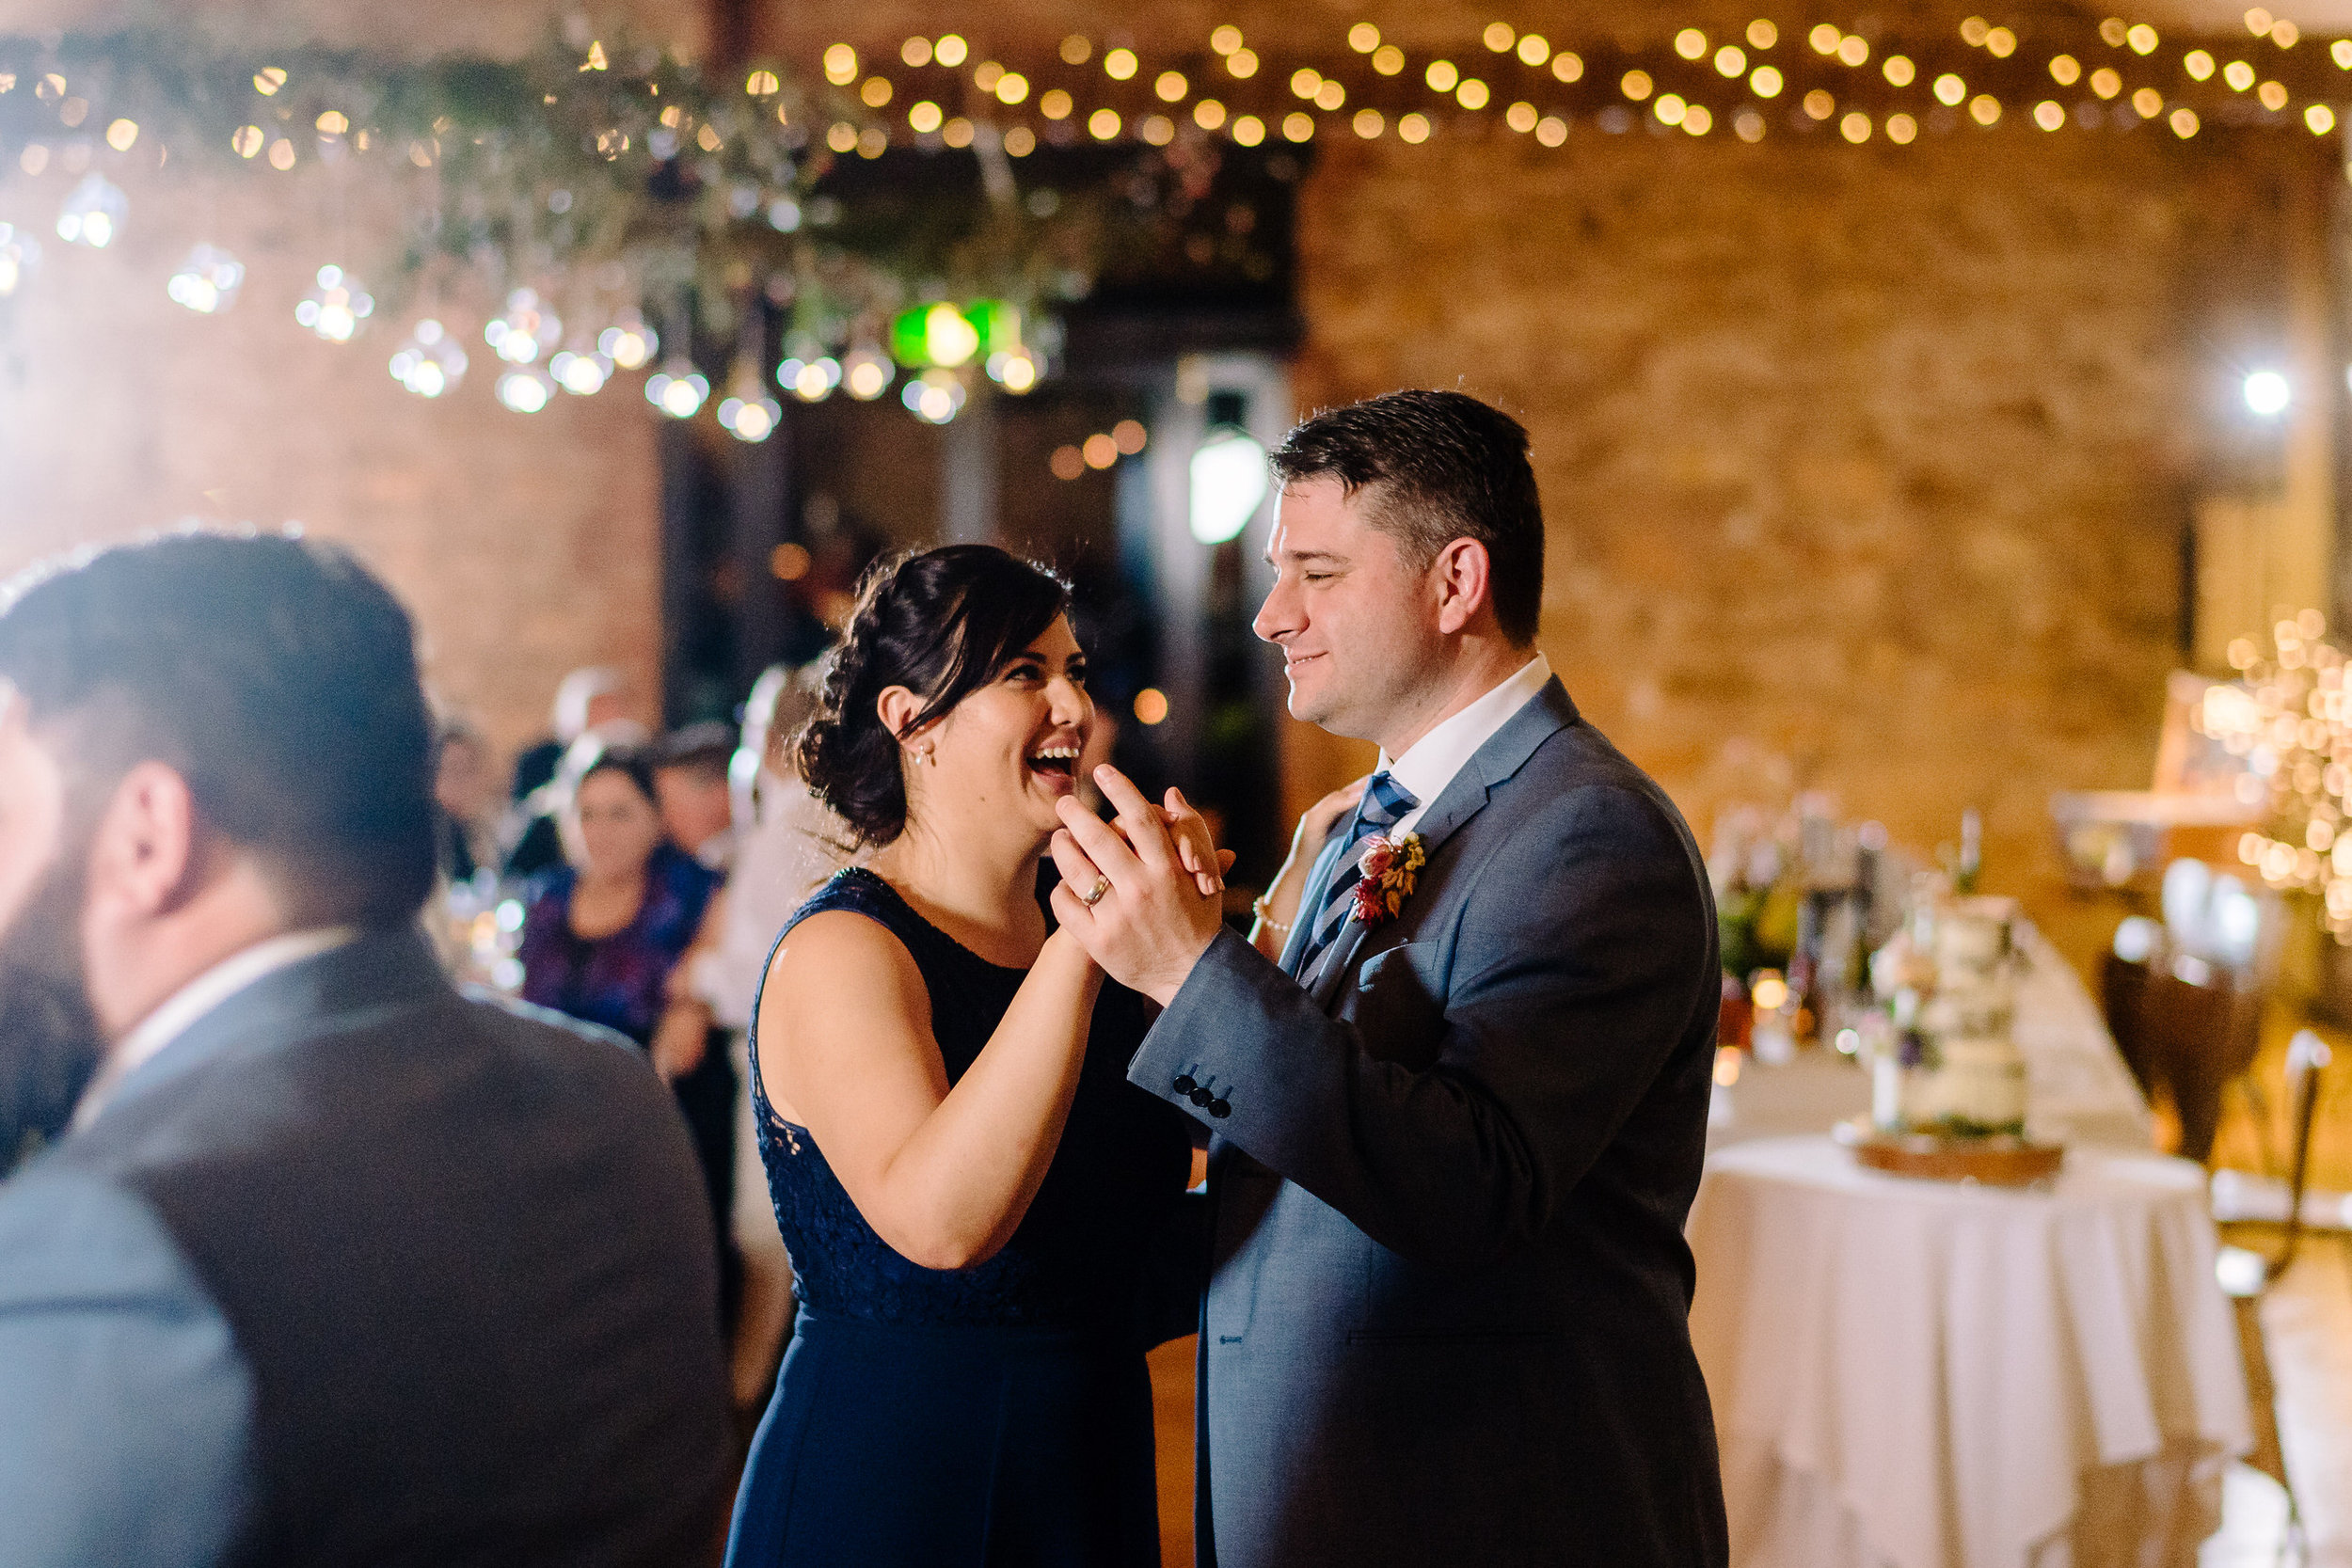 Chateau_Dore_Wedding_Photography_Justin_and_Jim-256.JPG